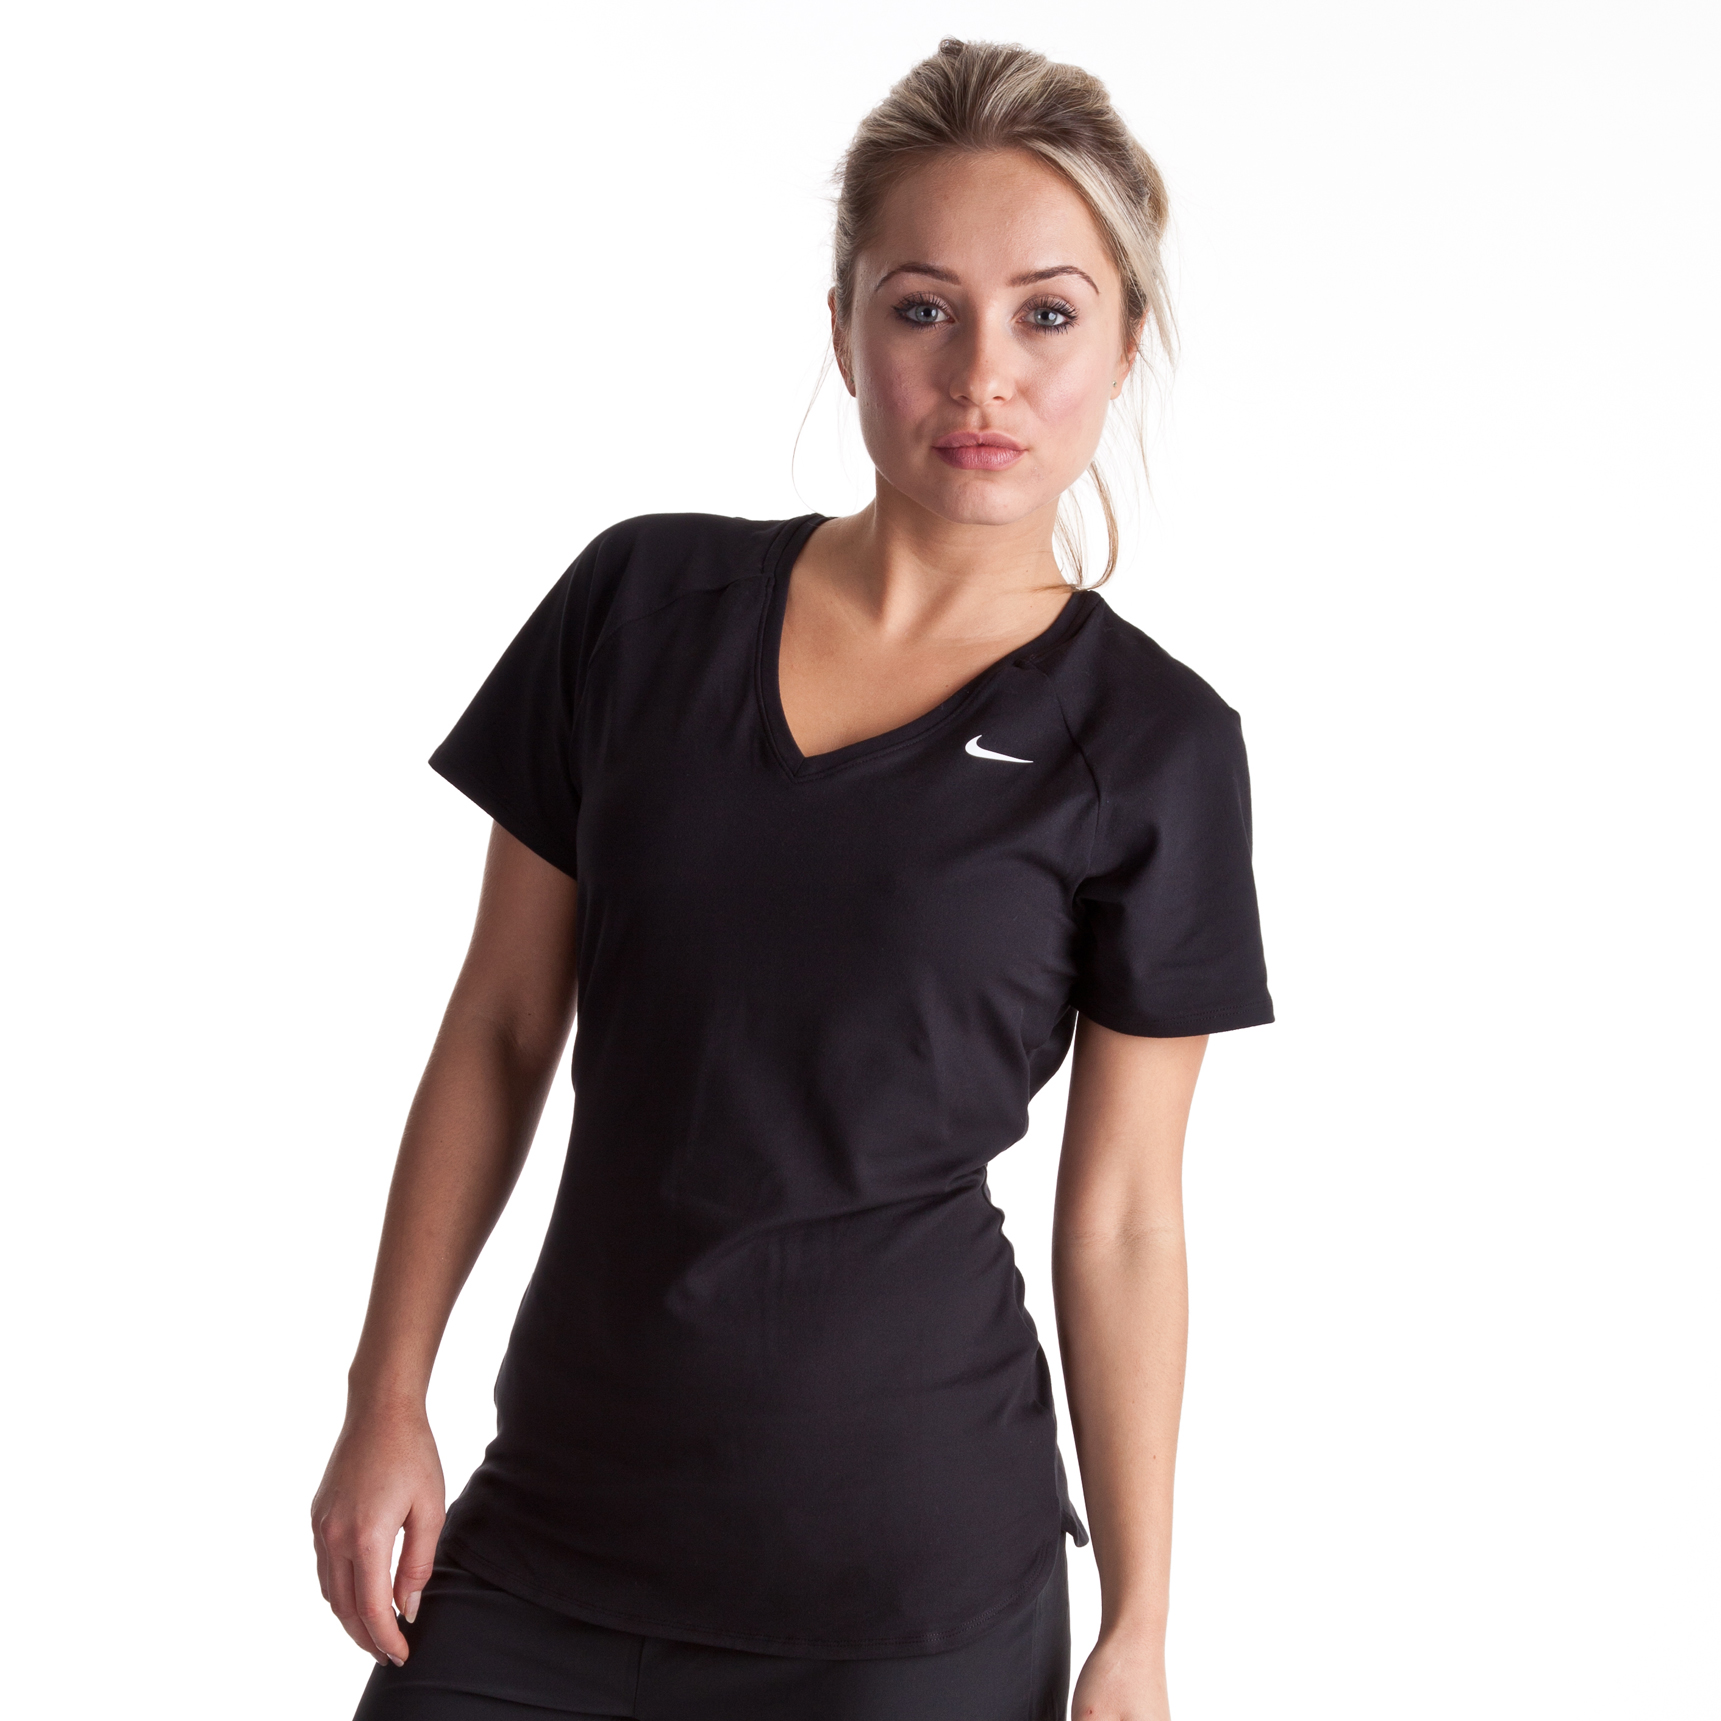 Nike Regular Club Short Sleeve Baselayer - Black/White - Womens